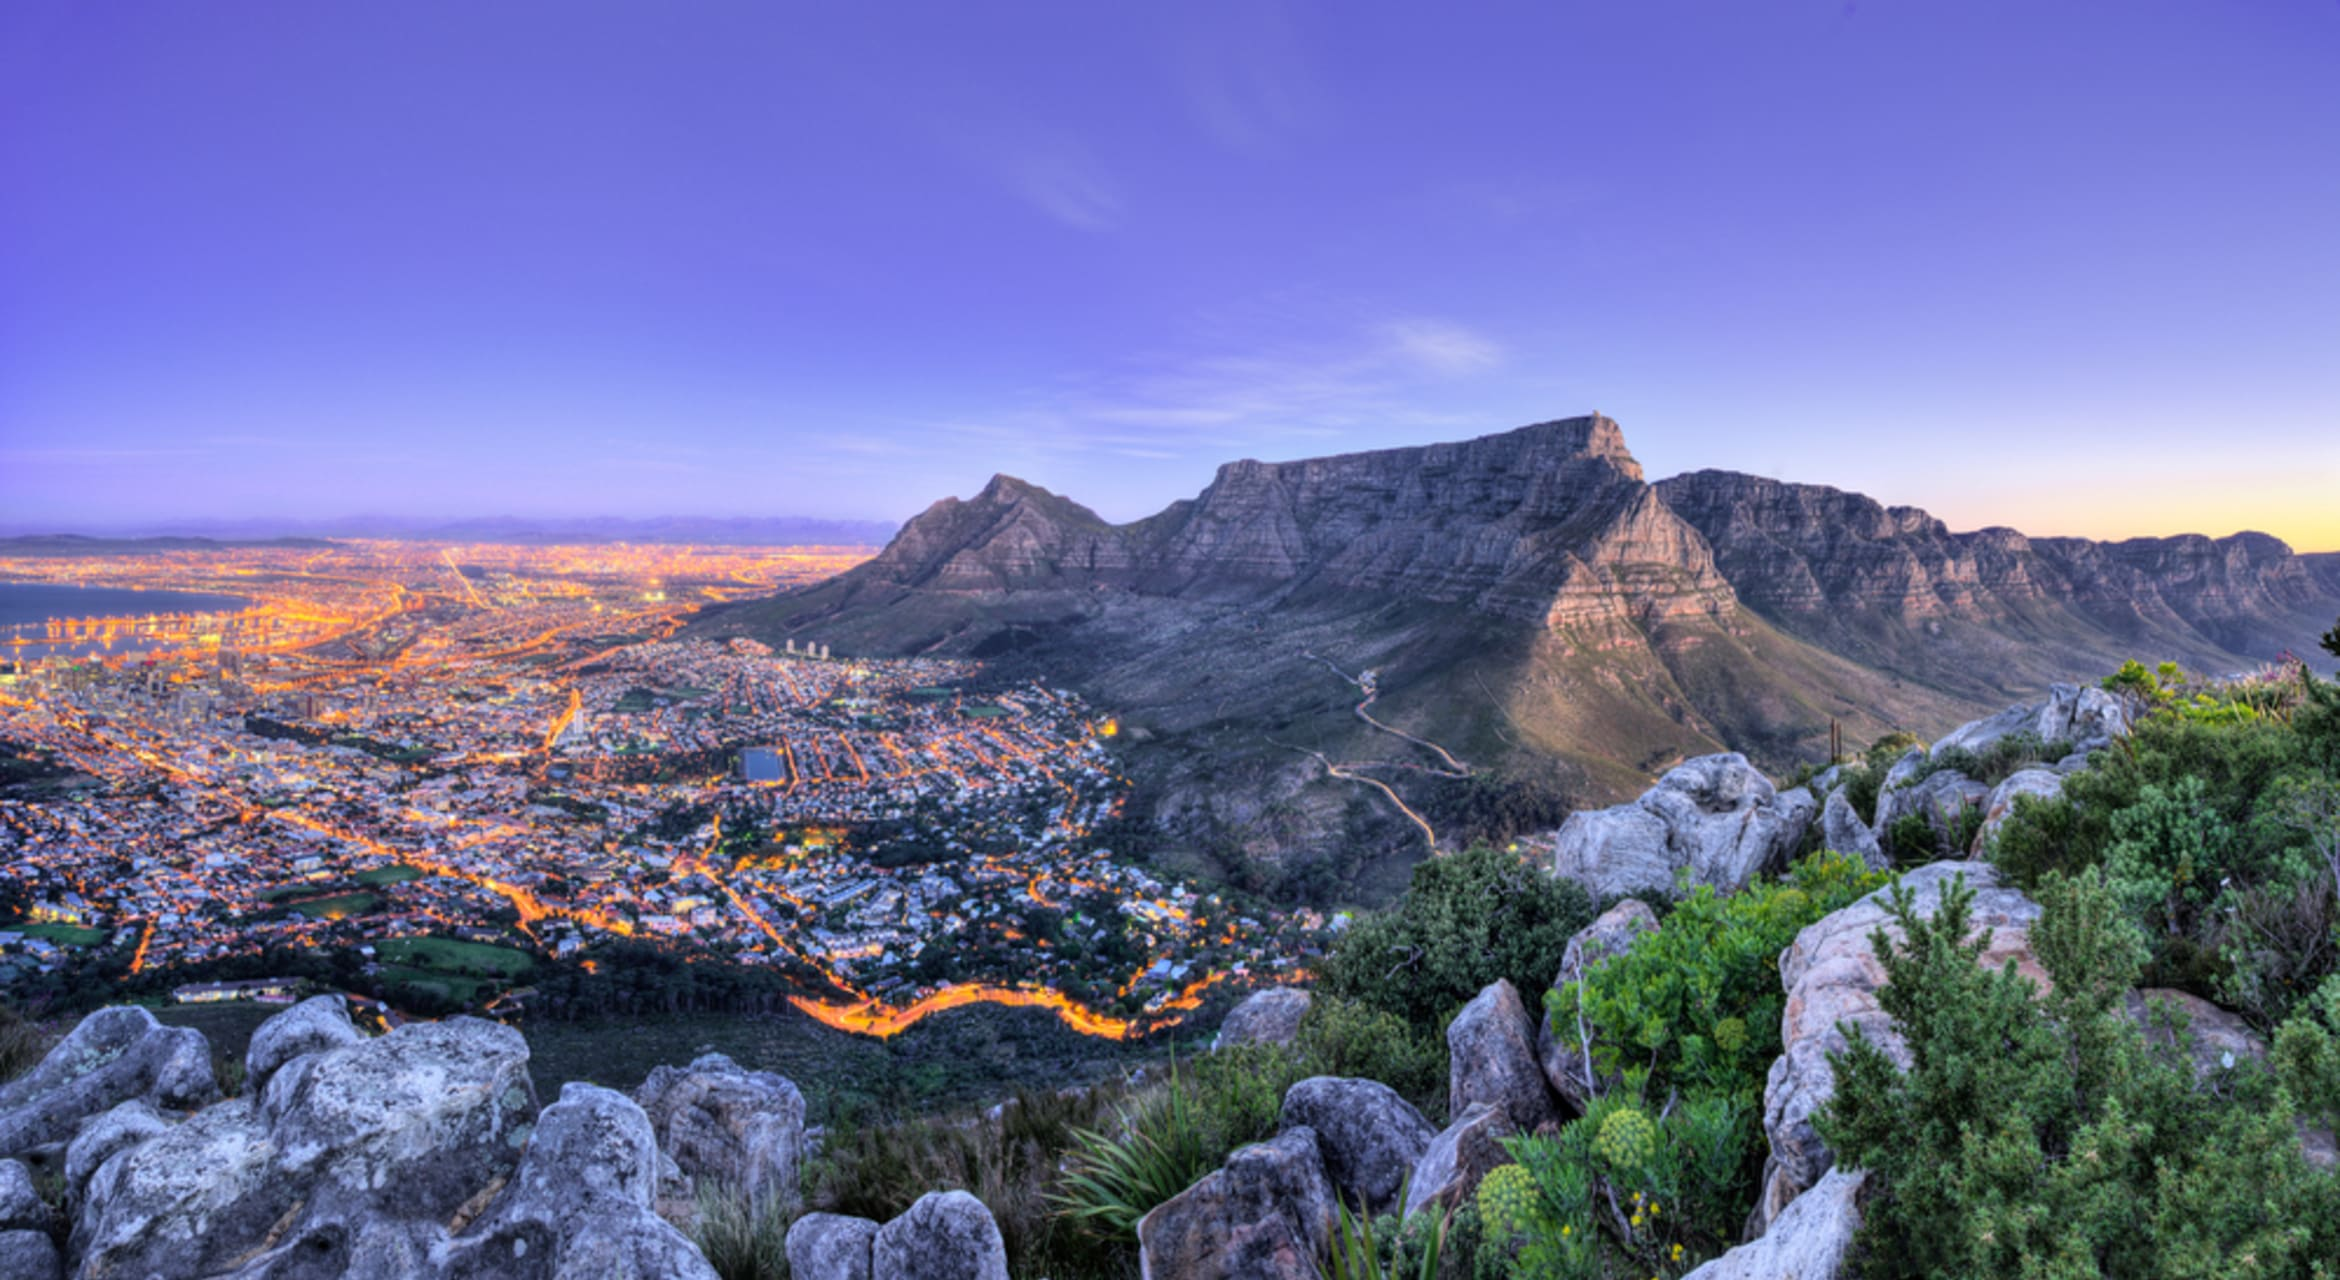 Cape Town - Table Mountain of Cape Town